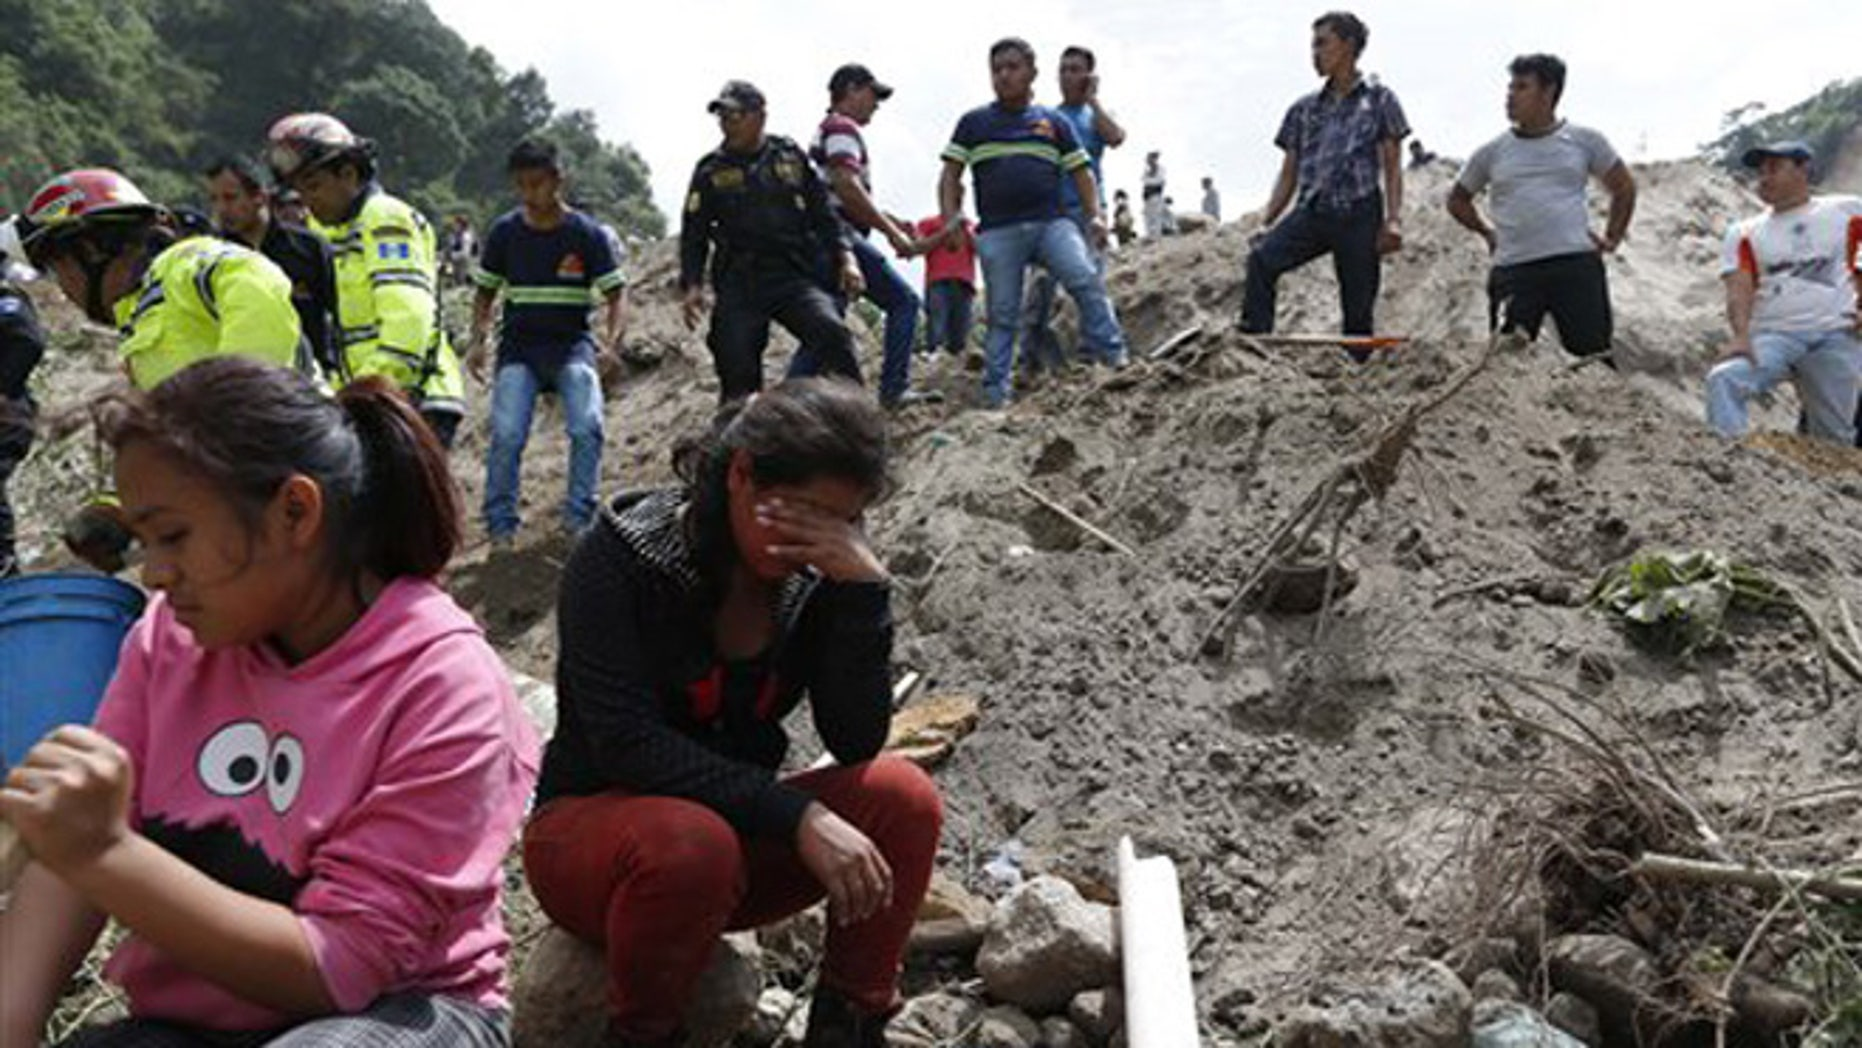 Oct. 2, 2015: Residents watch rescue efforts after a mudslide hit Santa Catarina Pinula, on the outskirts of Guatemala City. Heavy rain provoked a hillside to collapse on dozens of homes.